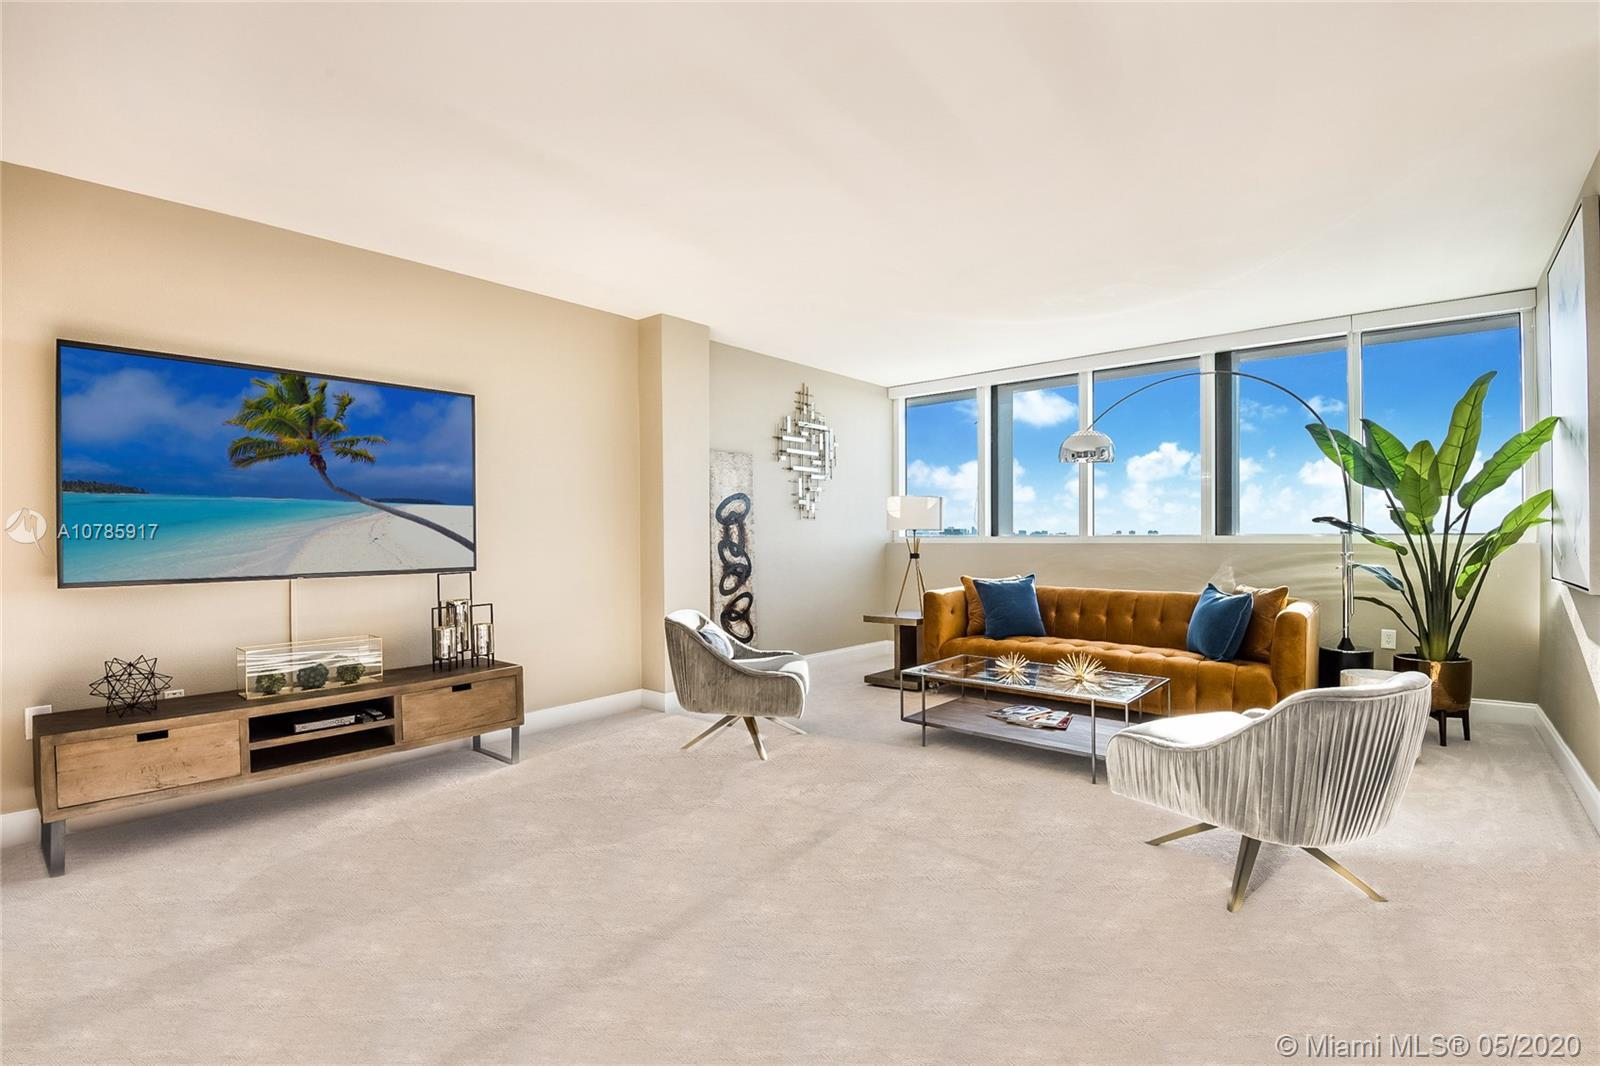 Gorgeous, newly furnished modern penthouse in full-service 5-star luxury building with views to matc